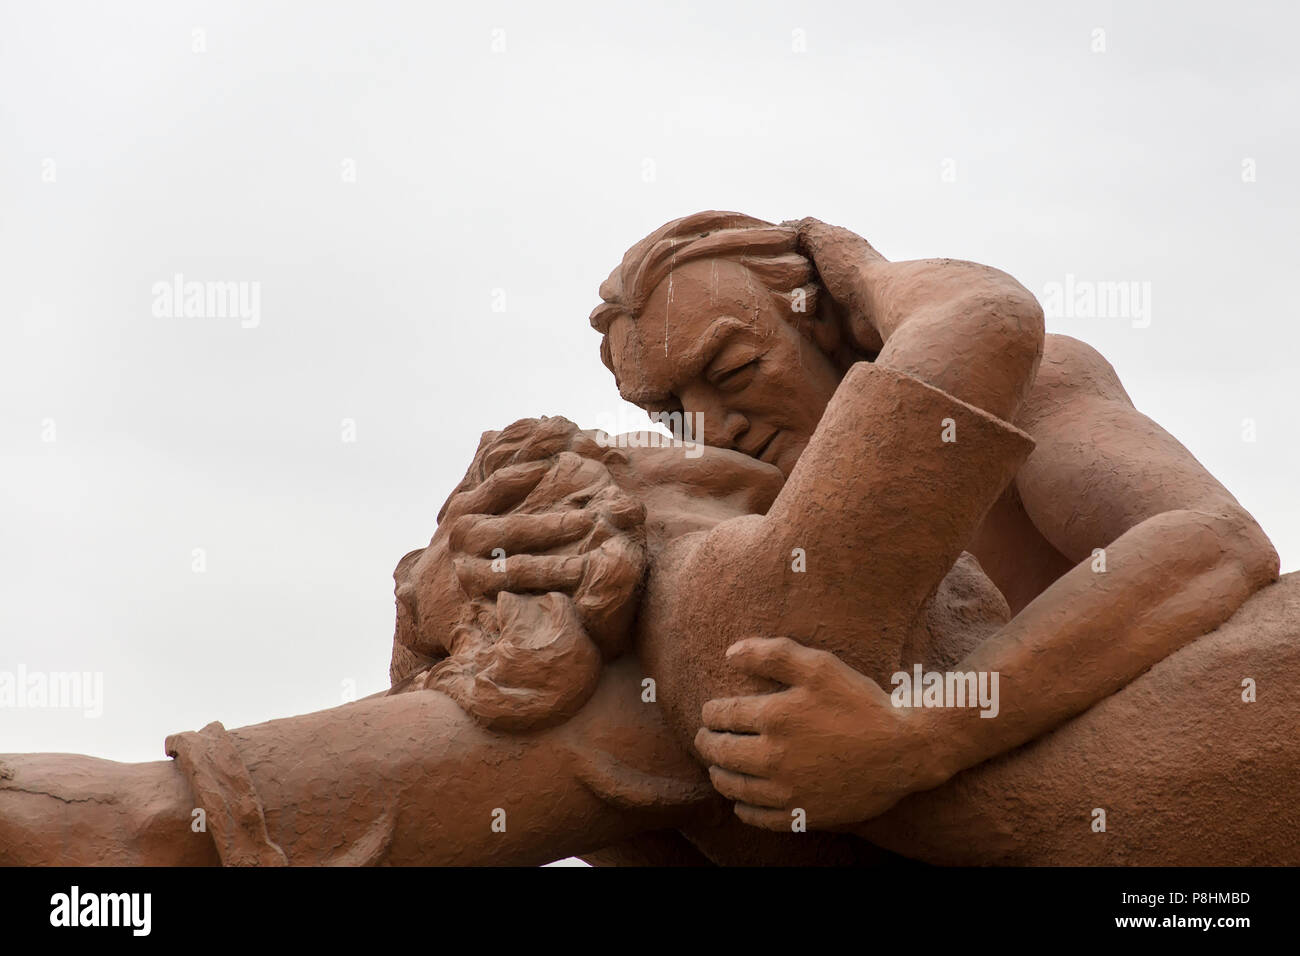 LIMA, PERU - DECEMBER 30, 2017: Detail of sculpture El Beso (The Kiss) in Parque del amor in Lima, Peru. Sculpture was made by Victor Delfin in 1993. Stock Photo